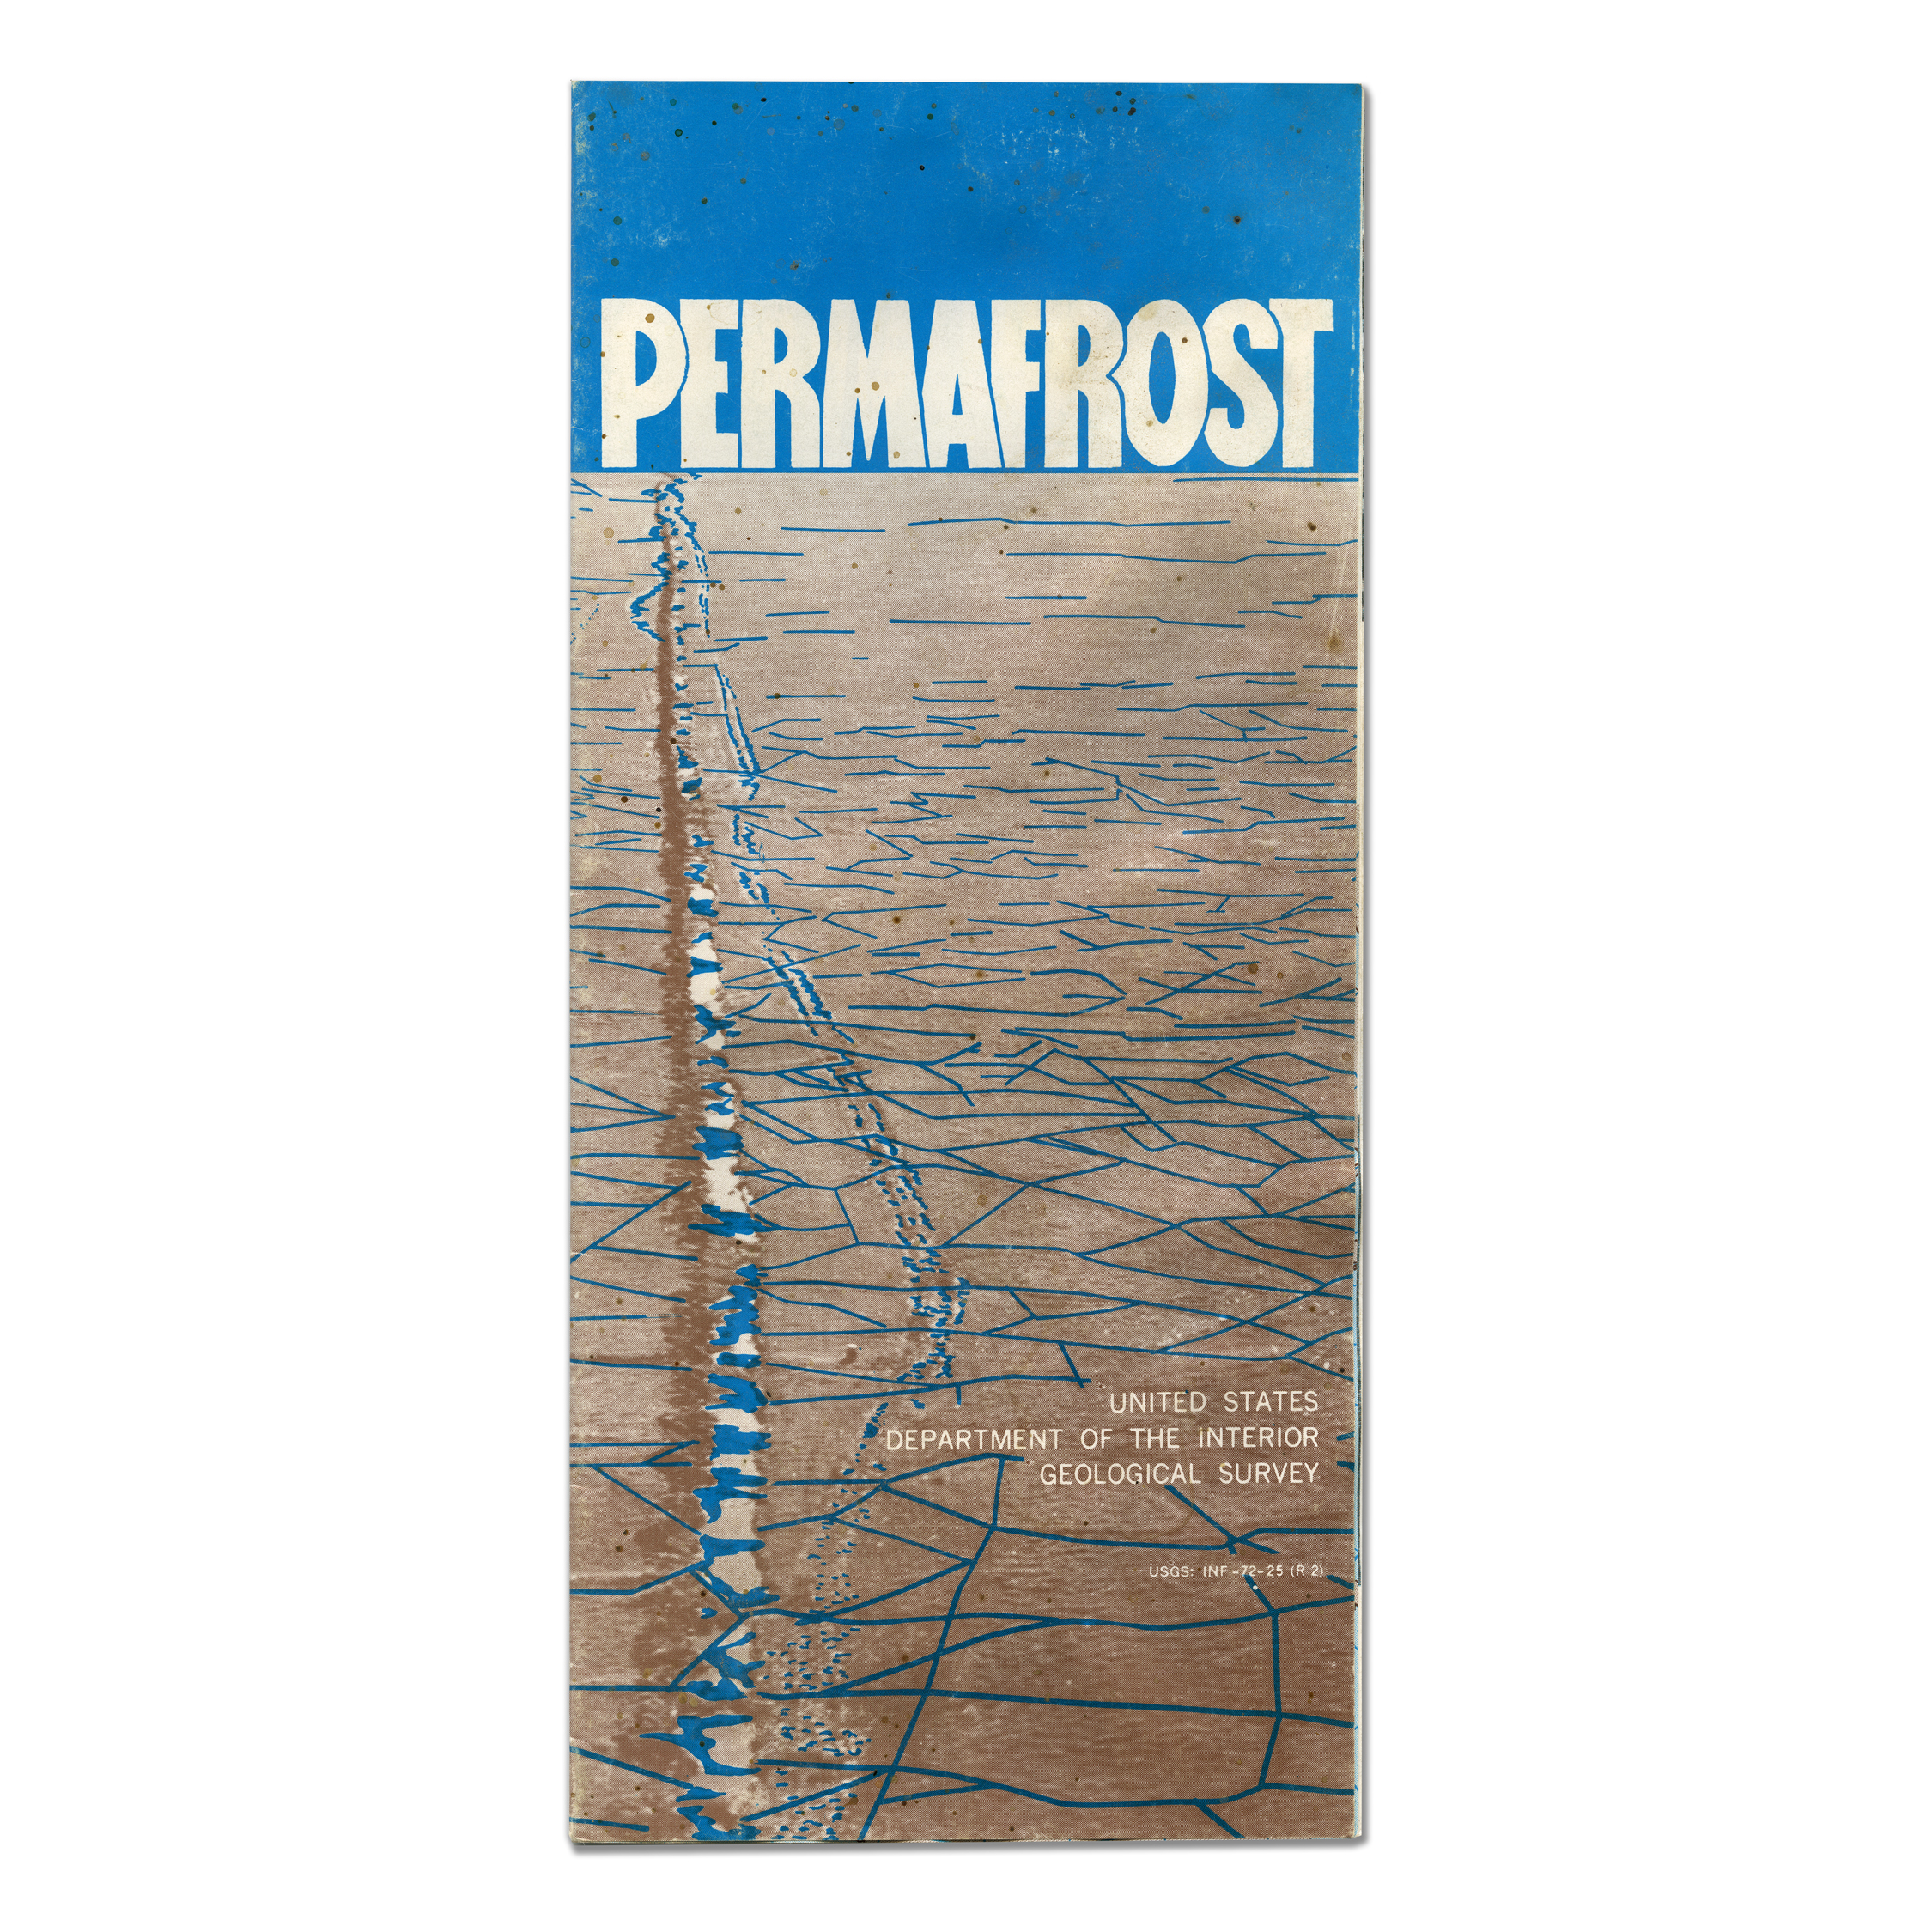 1975_department_of_the_interior_geological_survey_permfrost_brochure.jpg